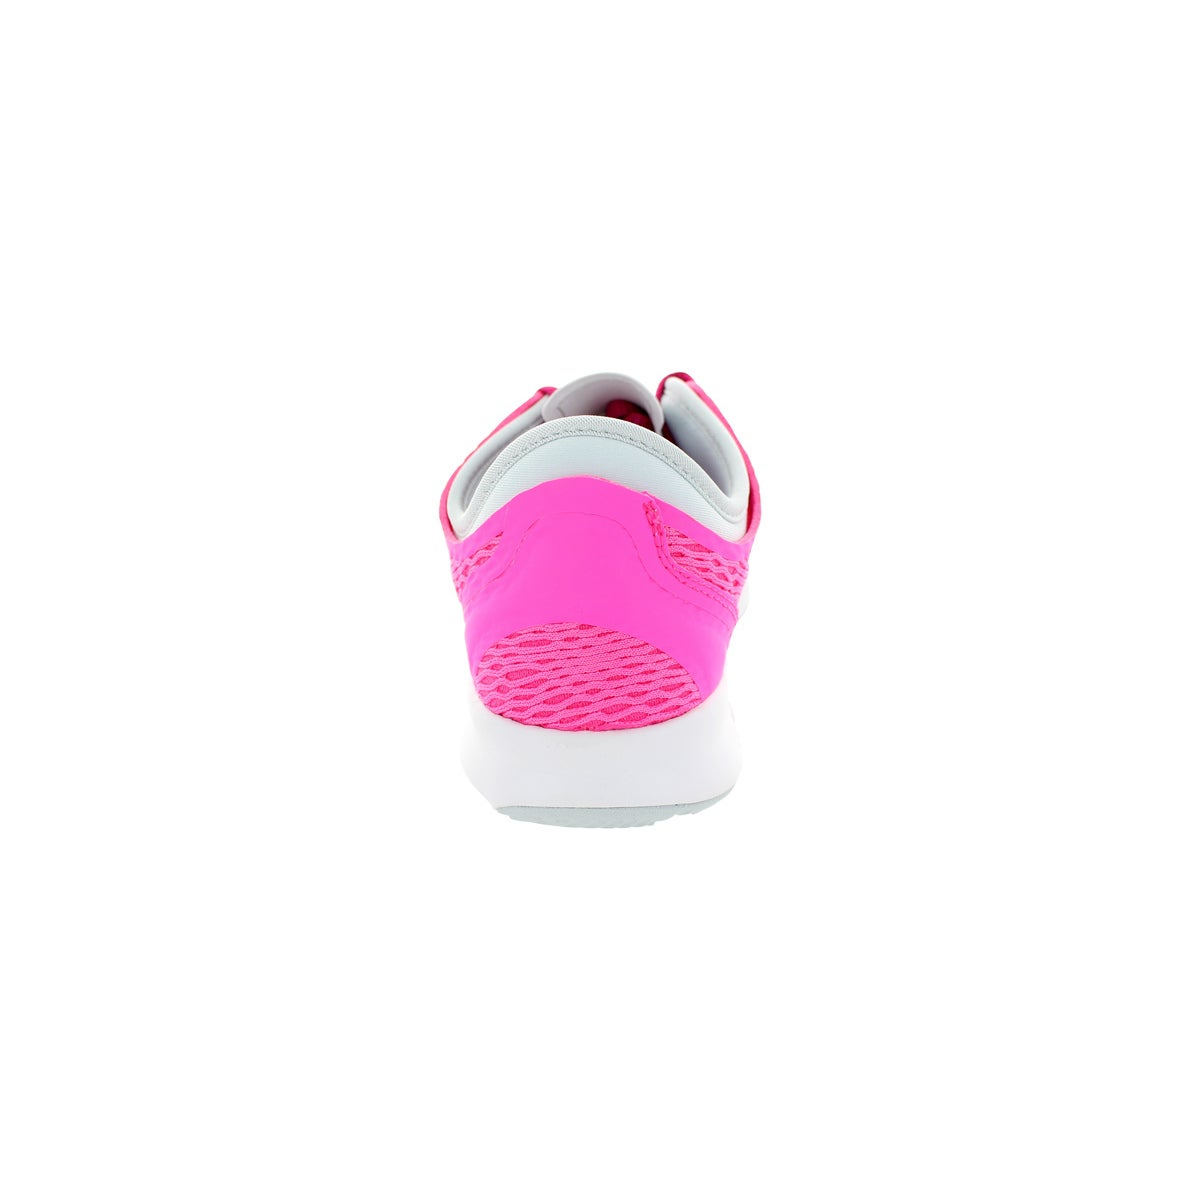 save off 70074 1c8b5 Shop Nike Women s Zoom Fit Pink Pow Polar Frbrry  Training Shoe - Free  Shipping Today - Overstock - 12322032